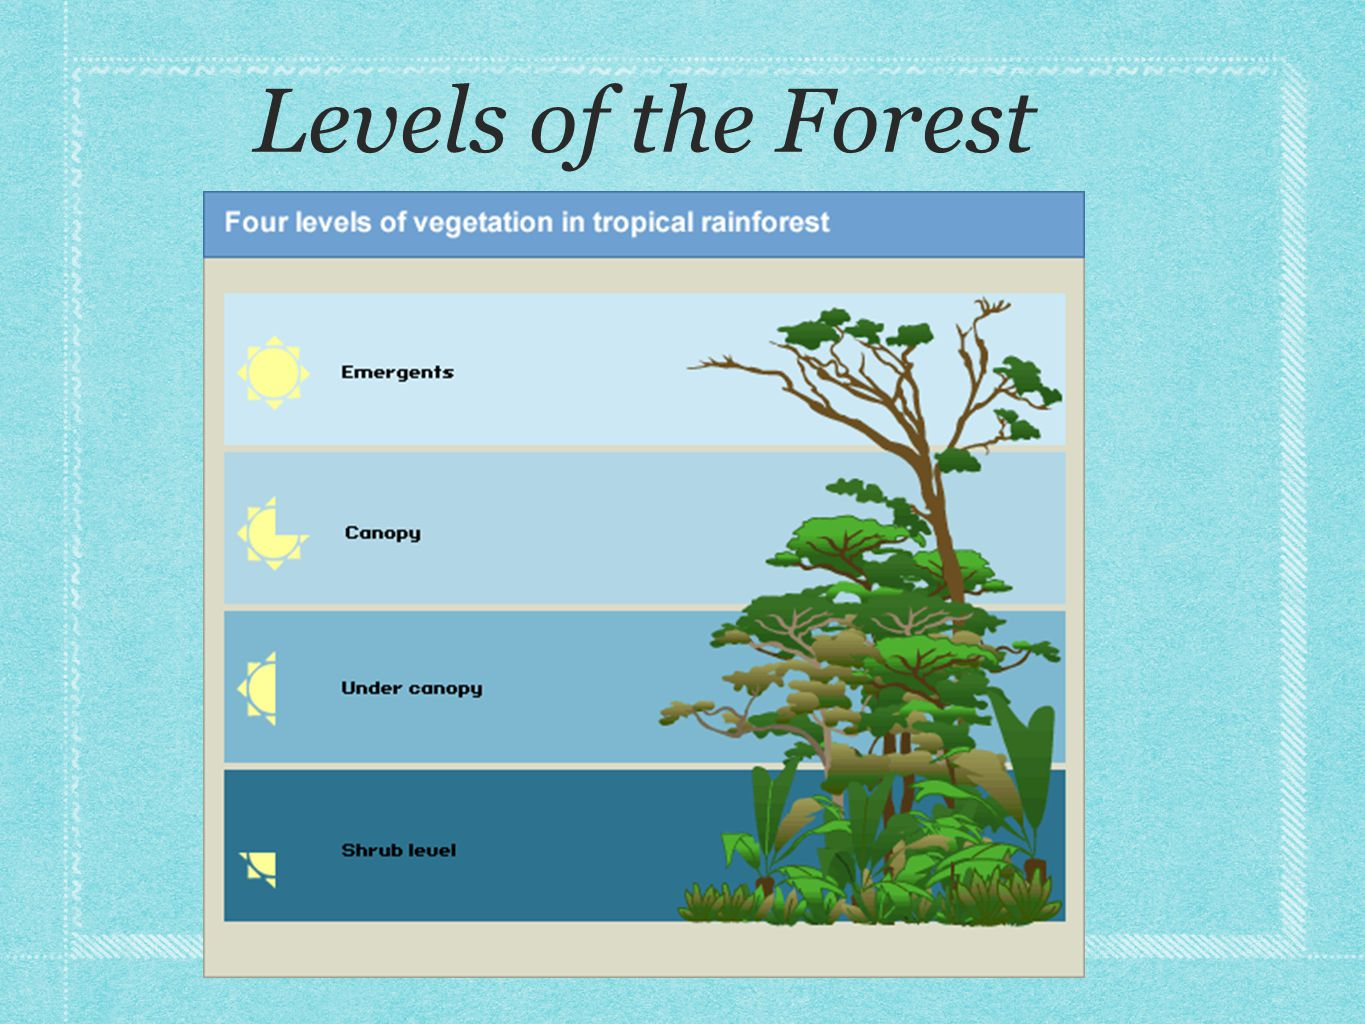 Levels of the Forest